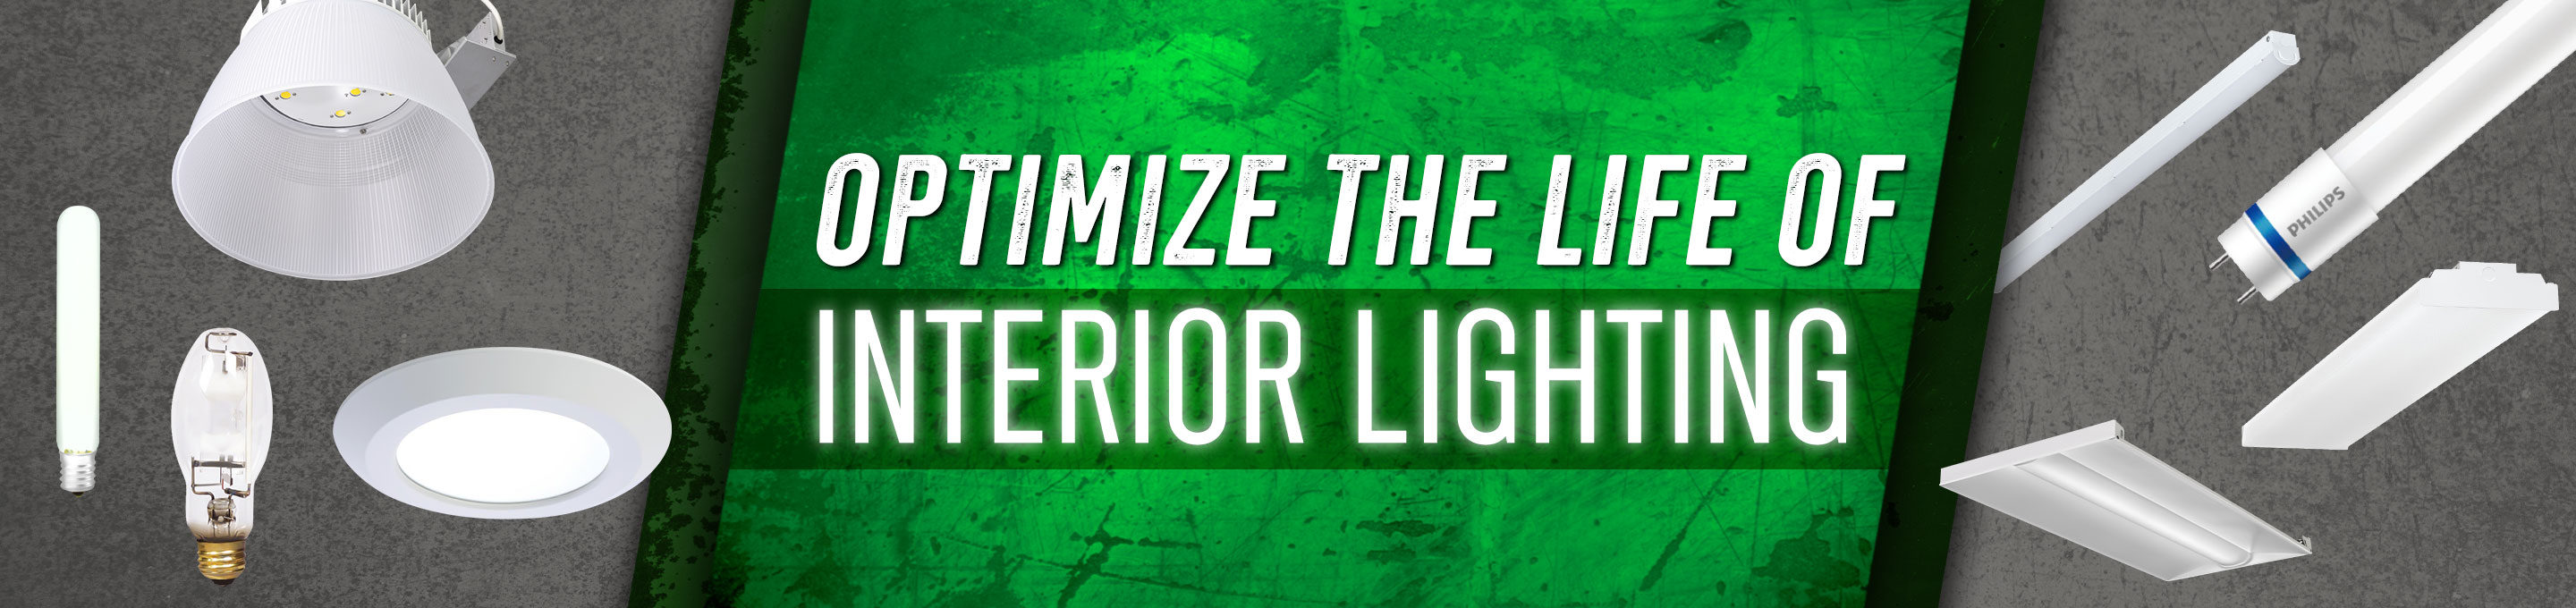 Optimize the Life of Interior Lighting